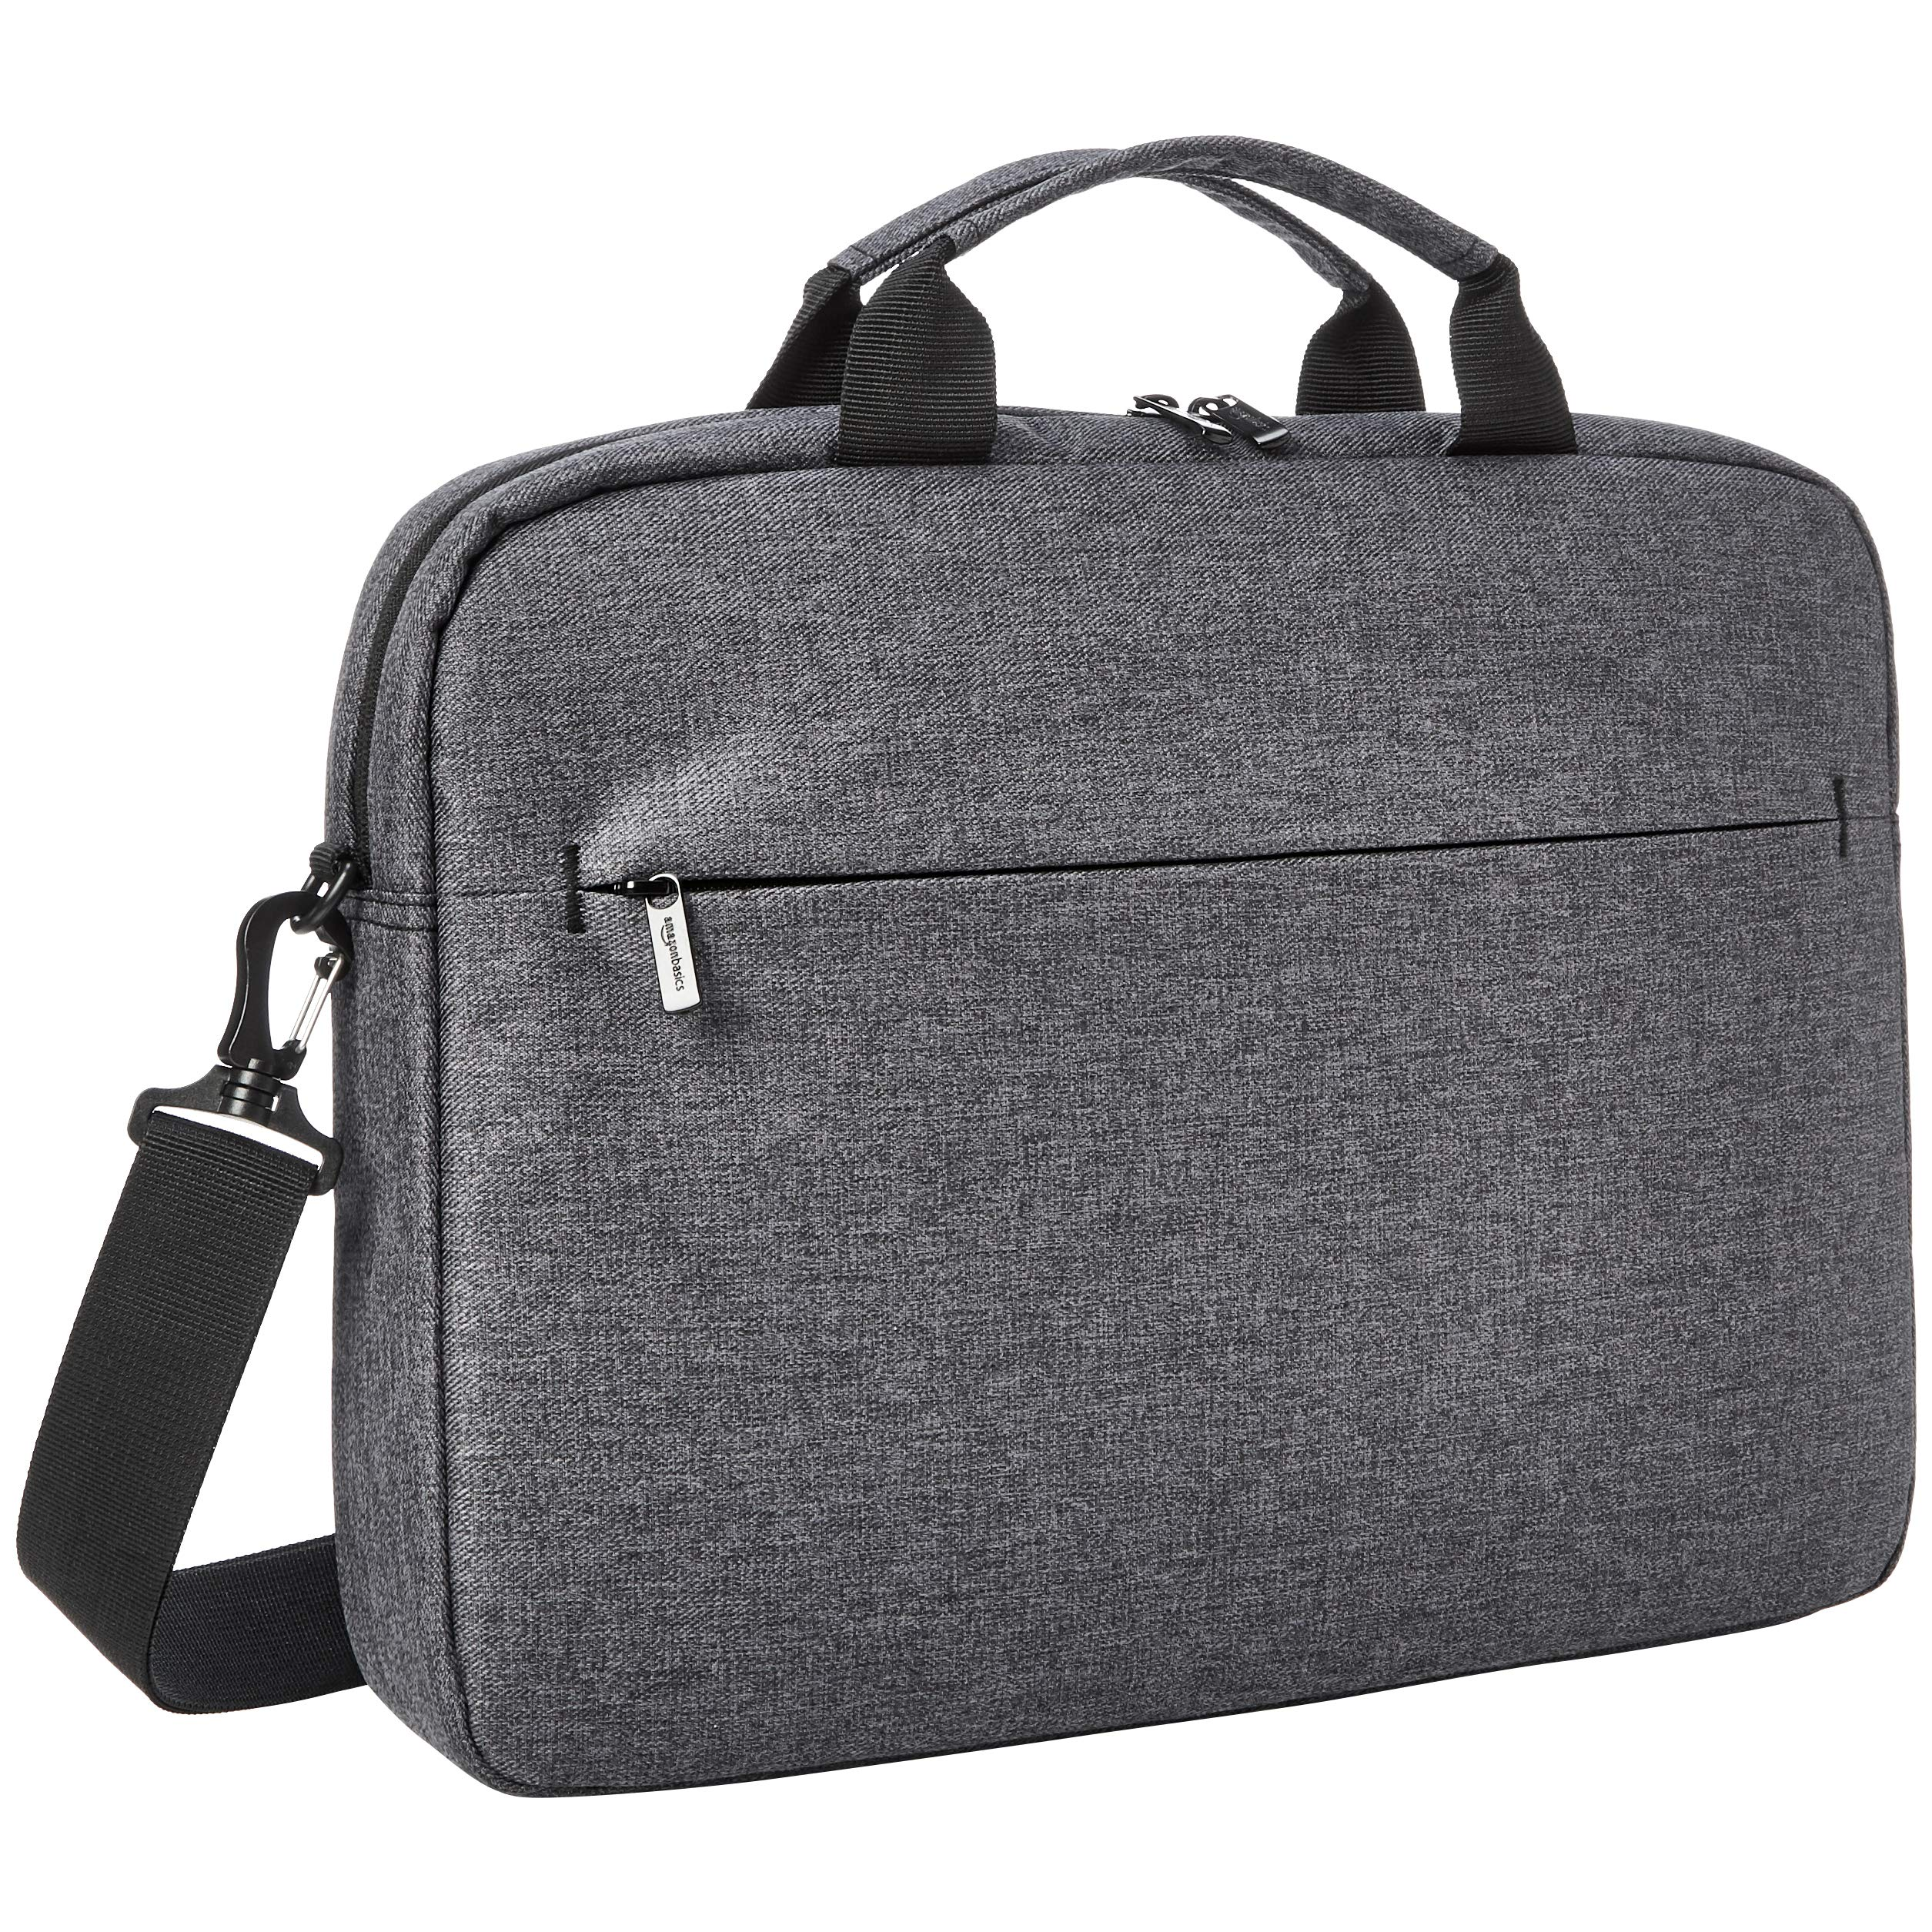 AmazonBasics Urban Laptop and Tablet Case Bag, 17 Inch, Grey